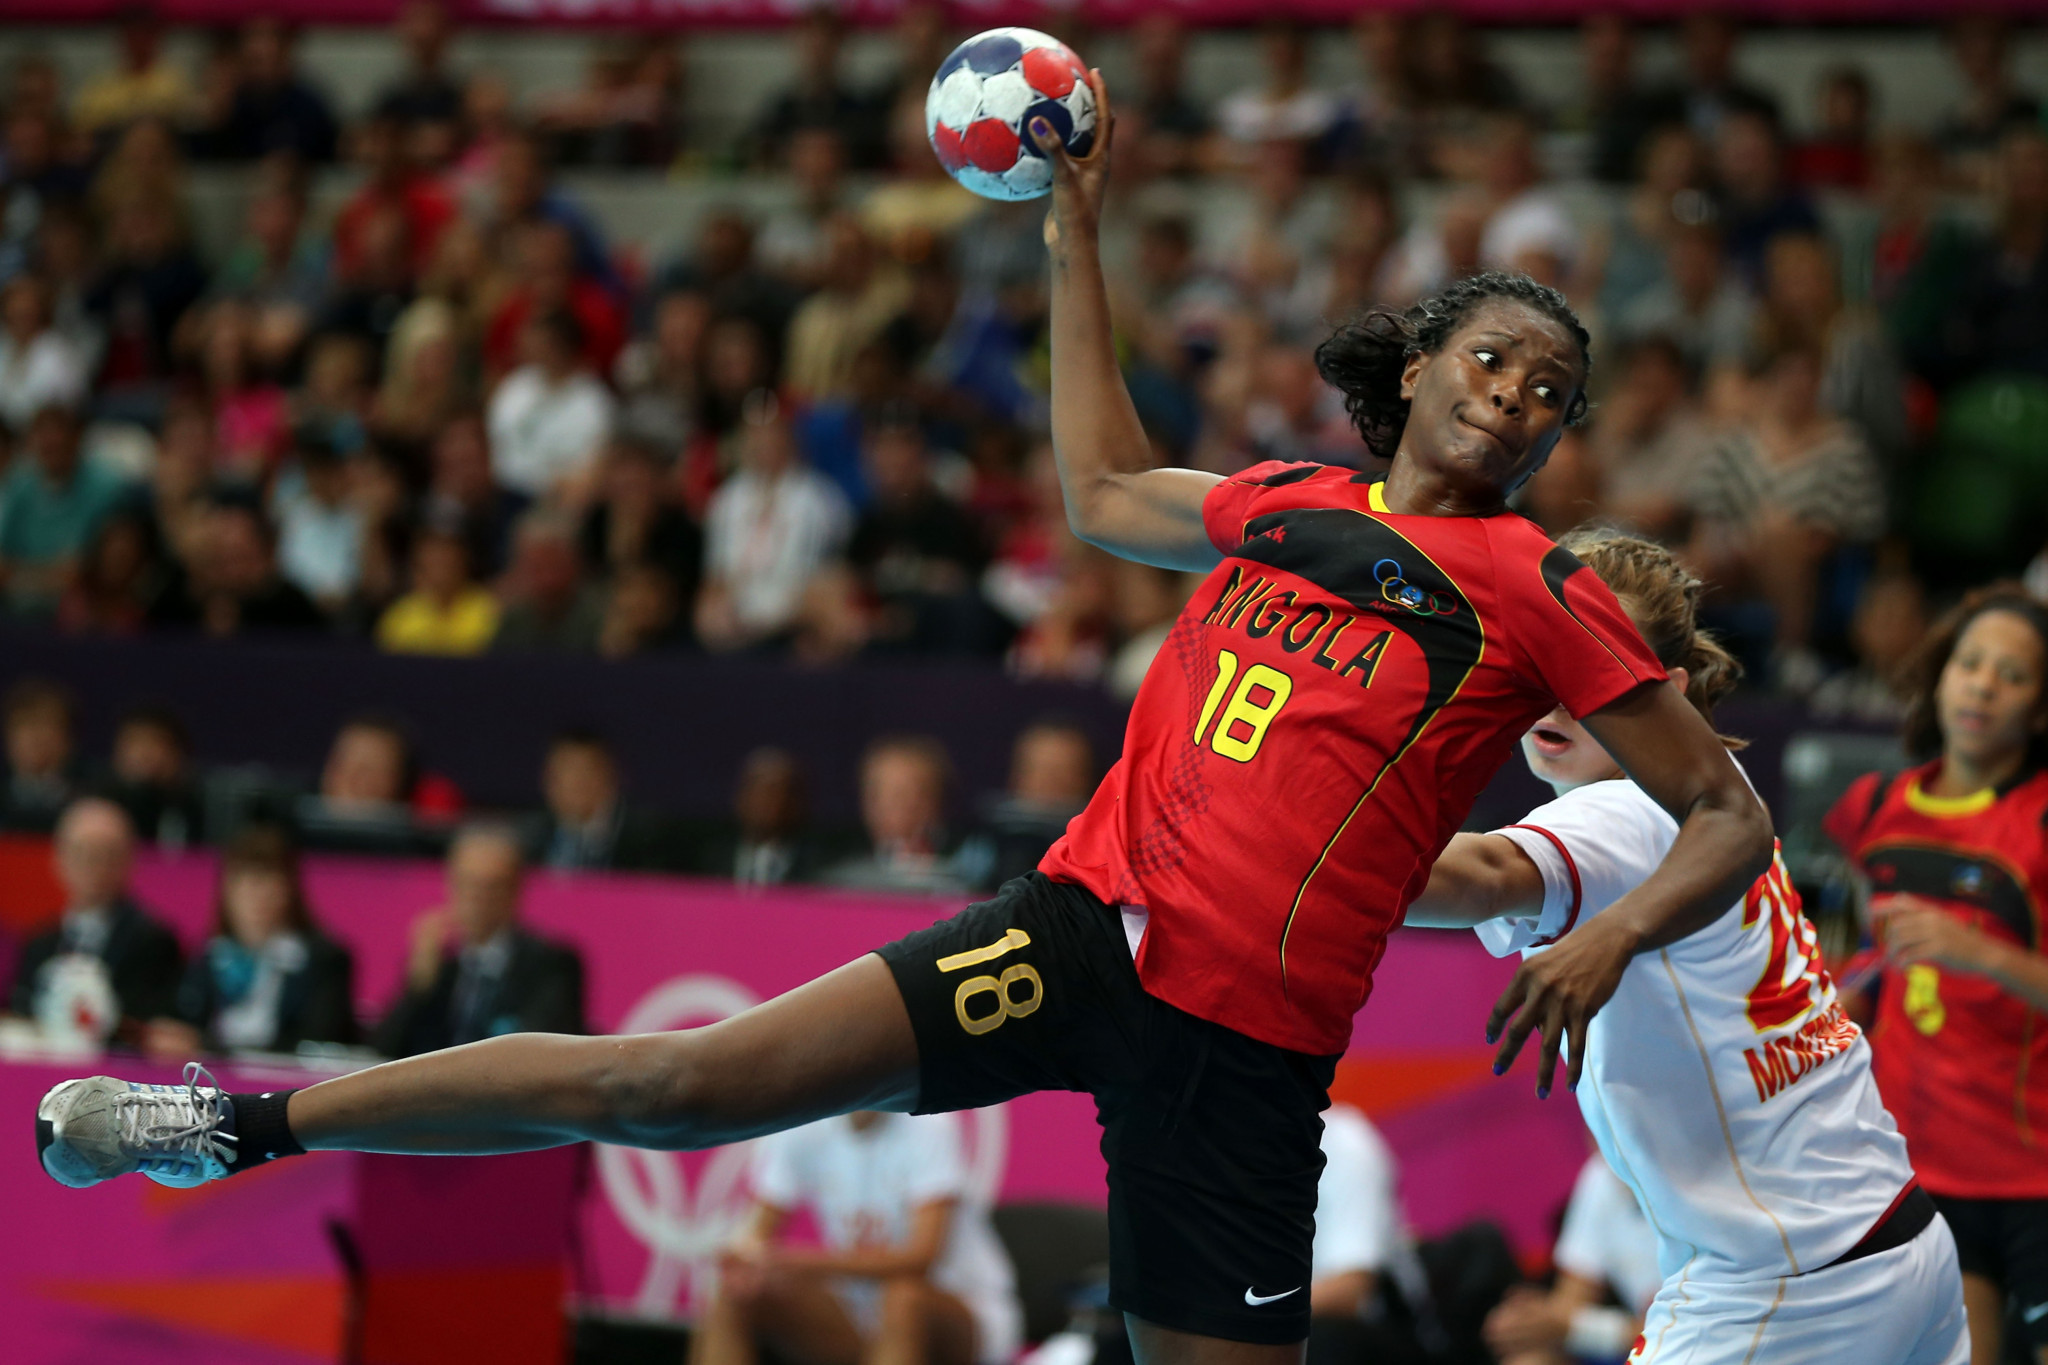 Angola will be defending their title at the African Women's Handball Championship now underway at Yaoundé in Cameroon ©Getty Images